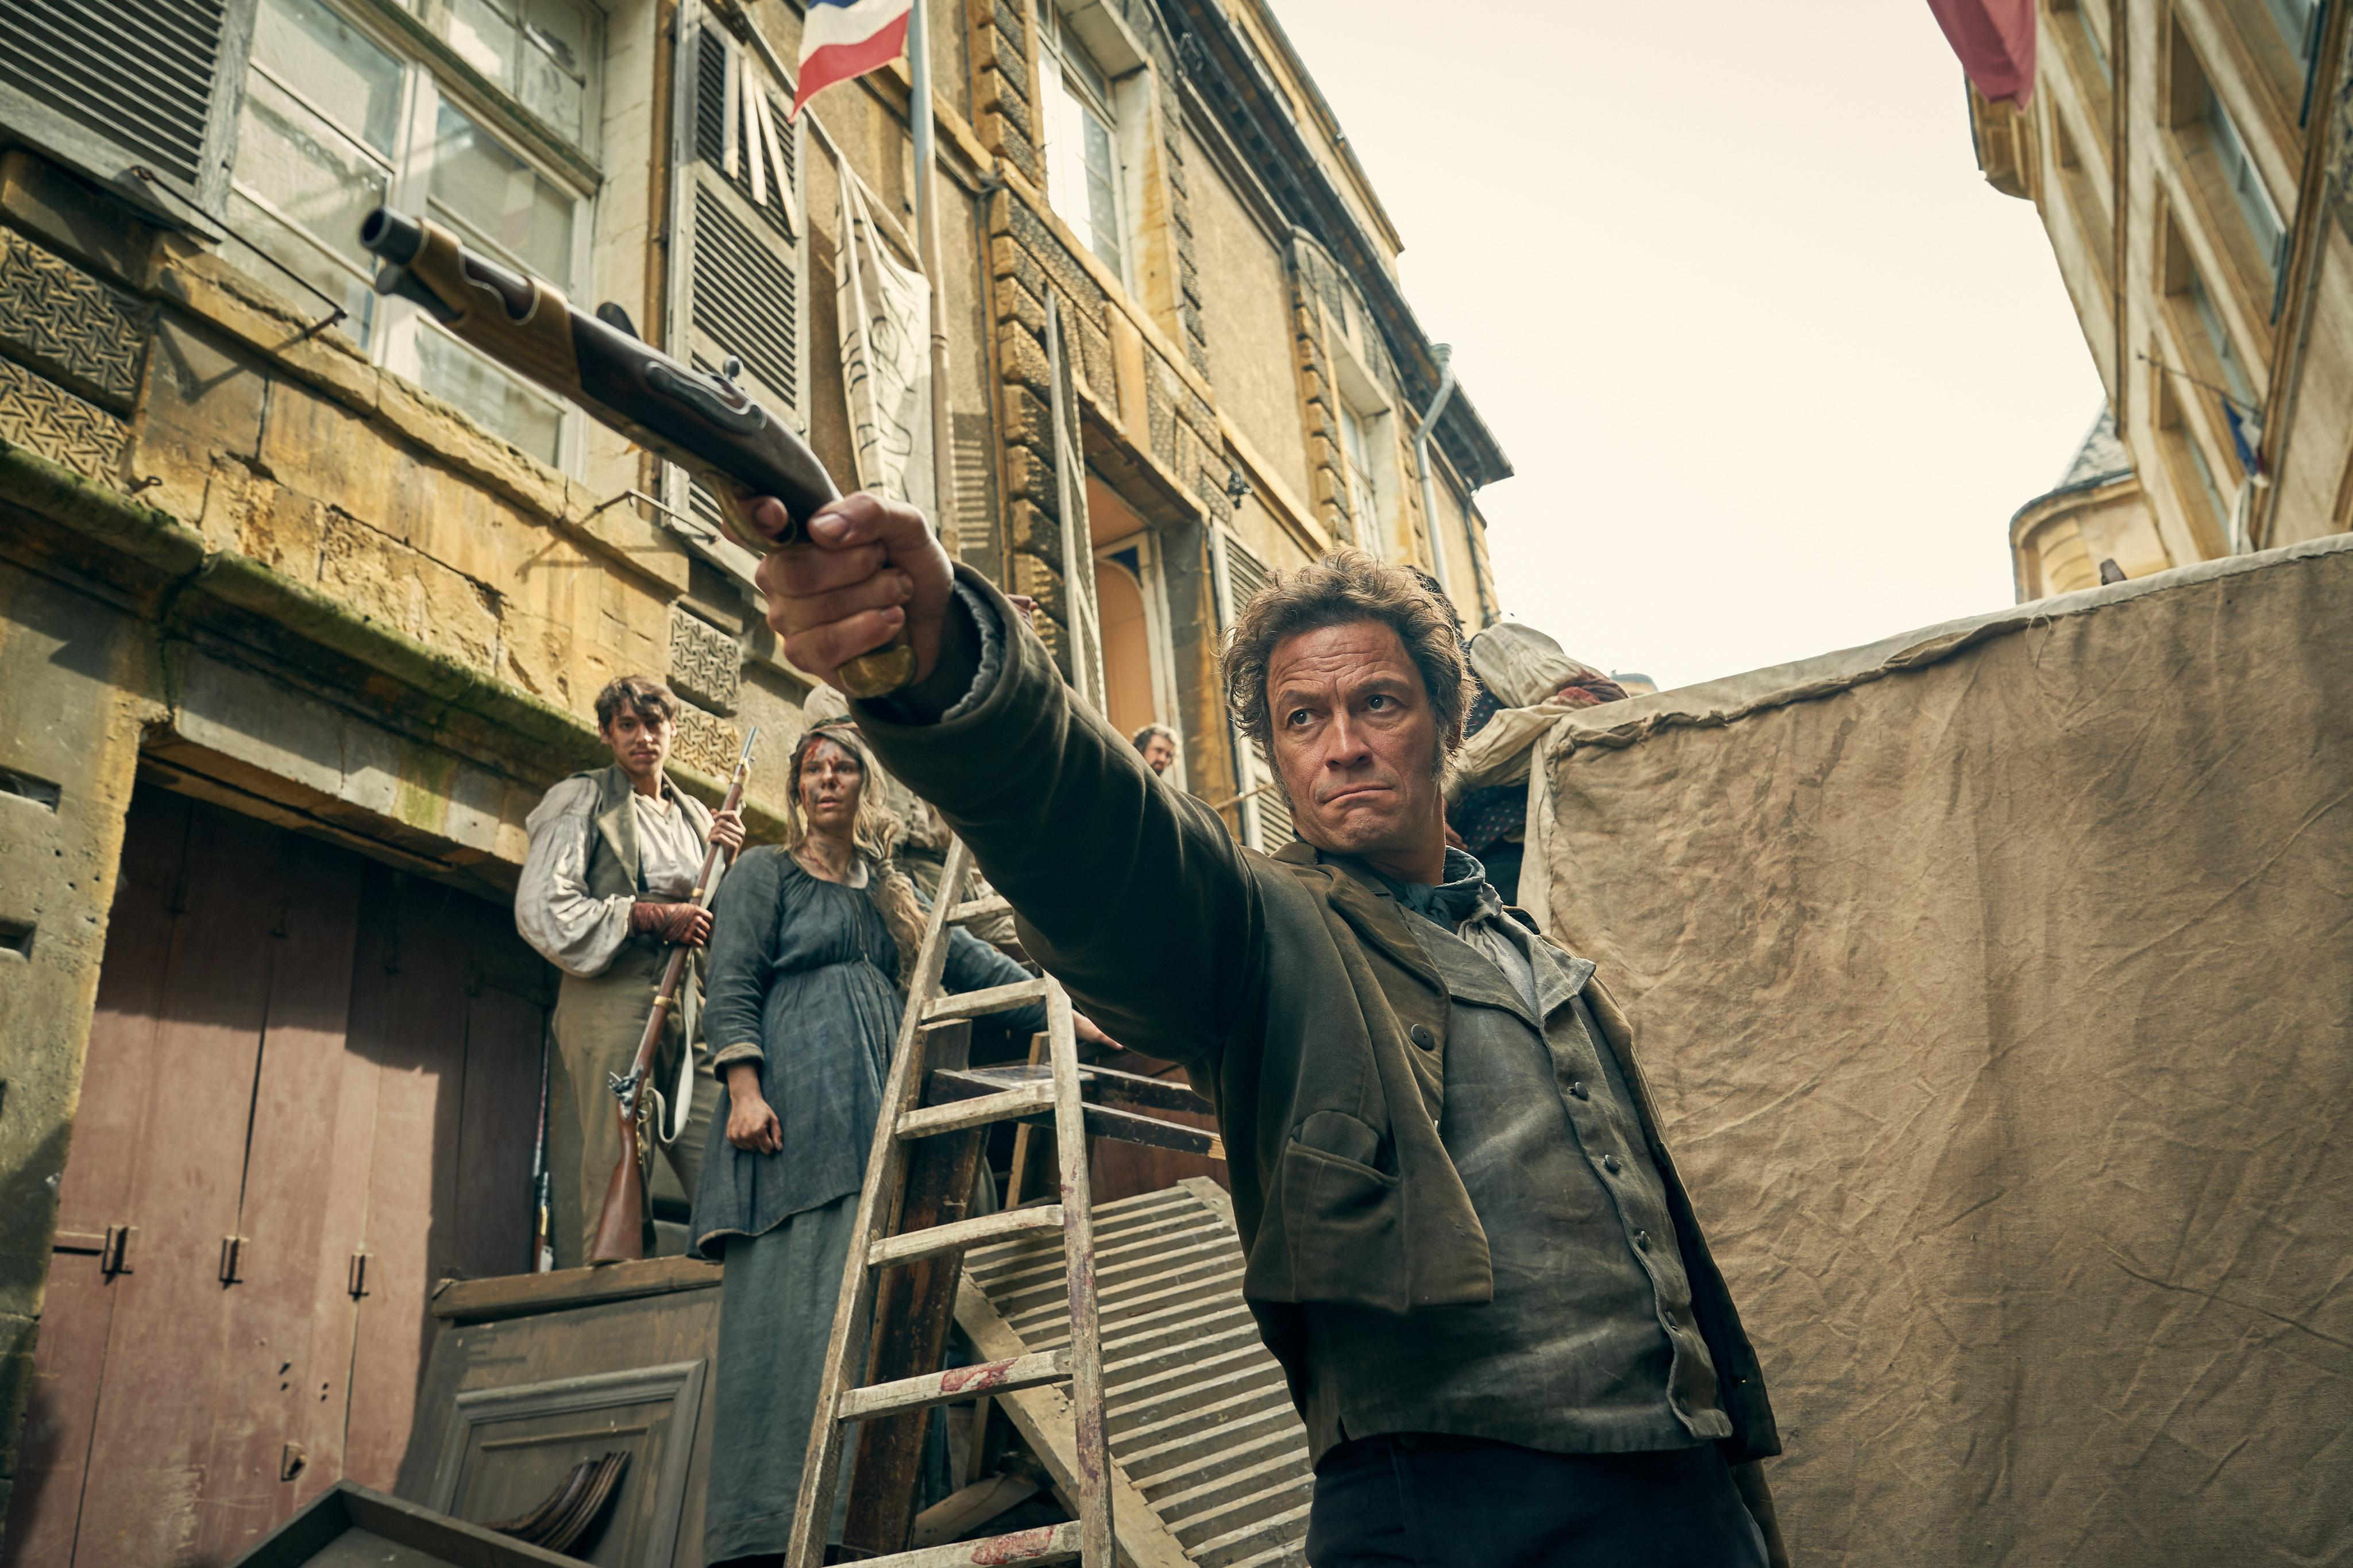 The week in TV: Les Misérables; Das Boot; Don McCullin: Looking for England; and more